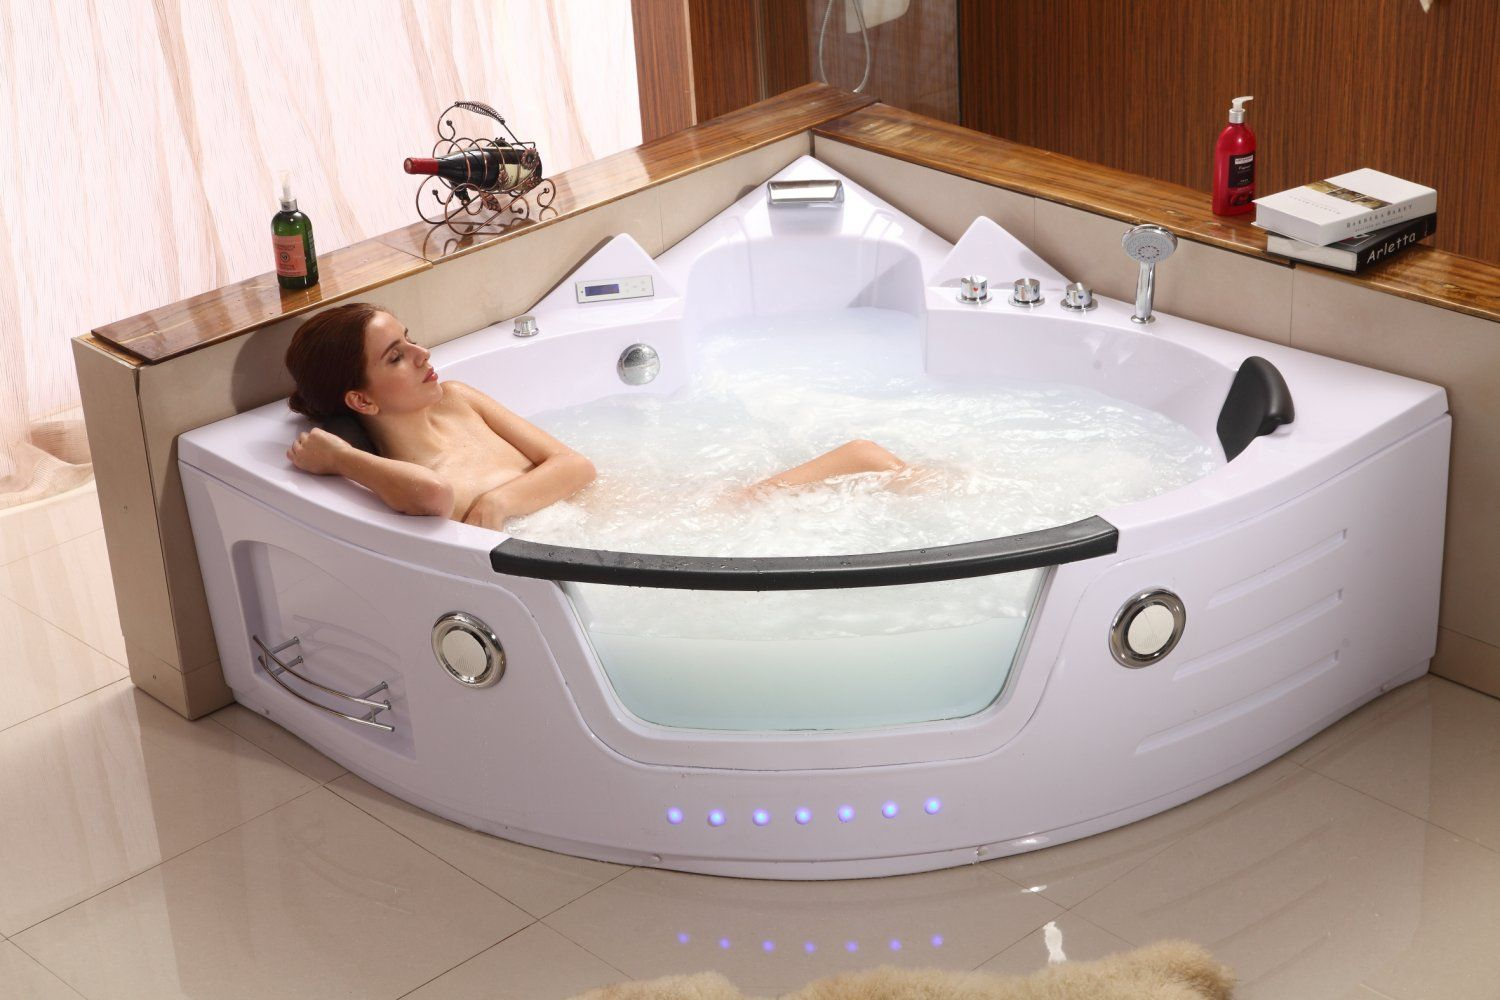 2 Person Hydrotherapy Computerized Massage Indoor Whirlpool Jetted Bathtub Hot Tub 050a White Dream Bathroom Bathtub Jacuzzi Hot Tub Jetted Bath Tubs